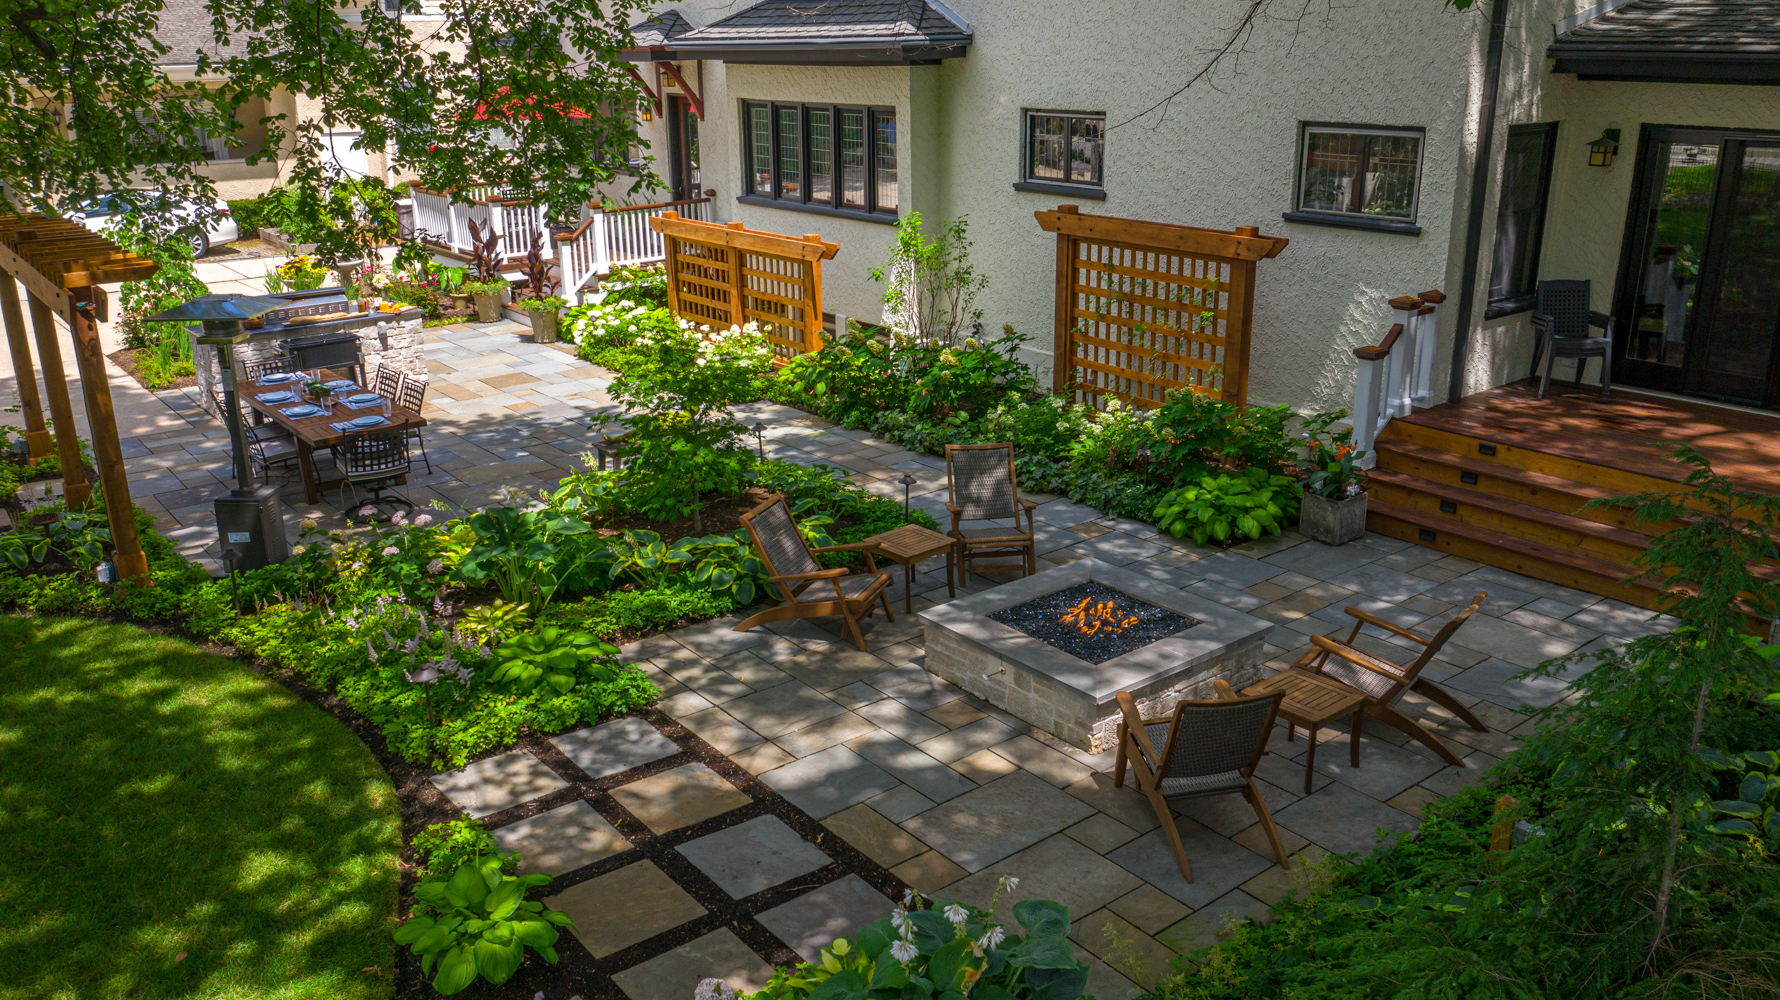 aerial-patio-pavers-trellis-seating-fire feature-steps-outdoor kitchen-arbor-planting-plants-lawn